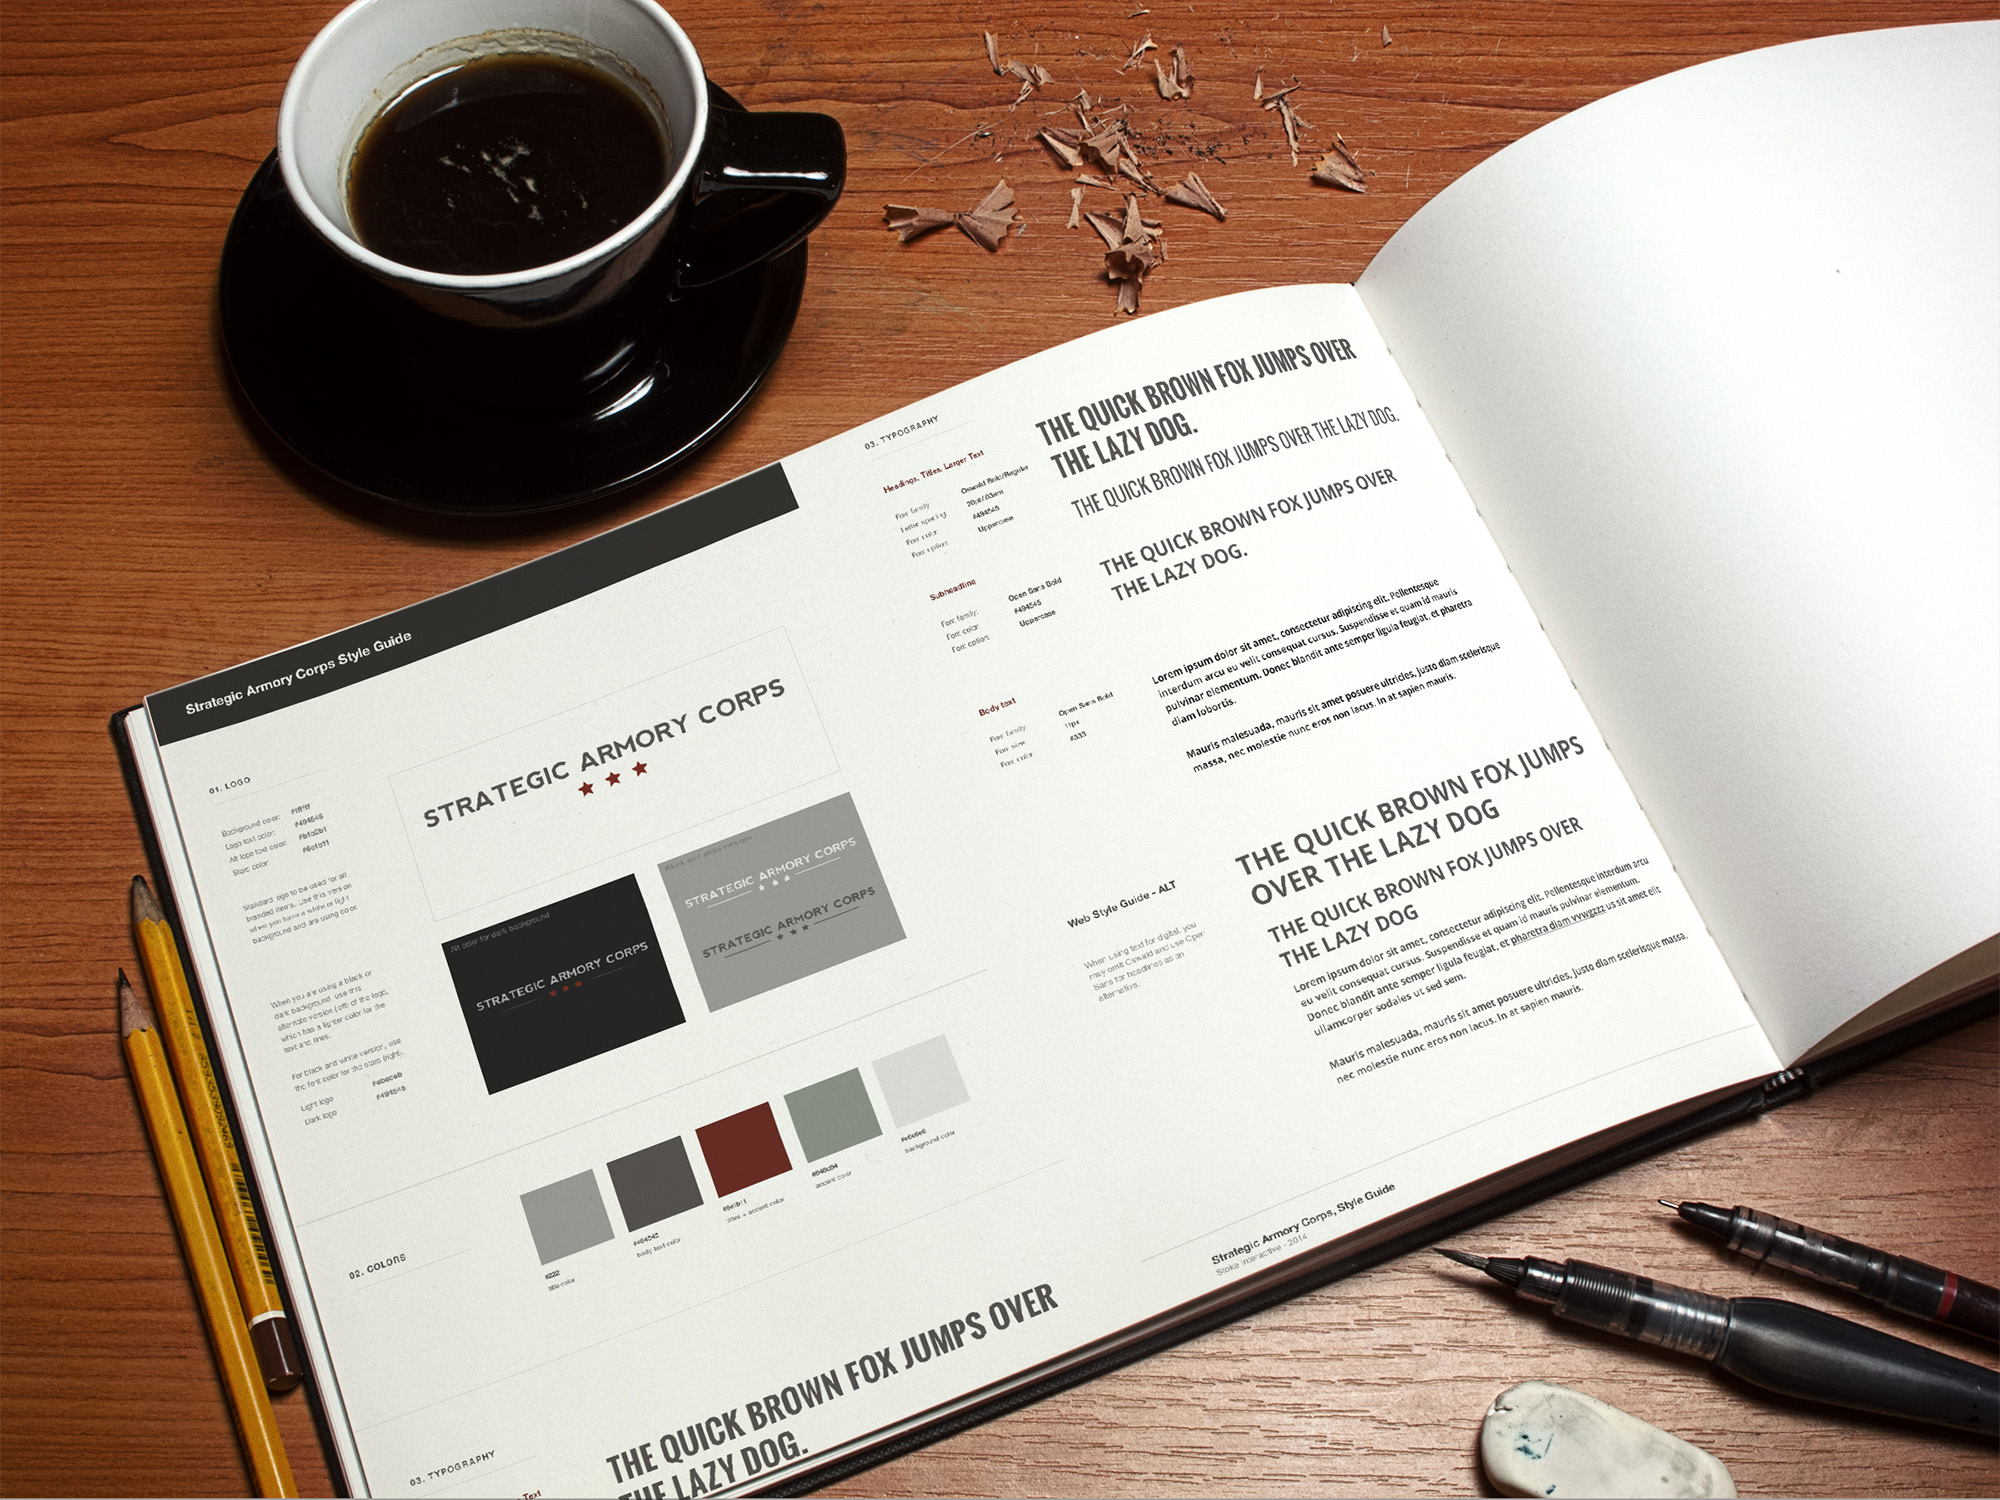 Strategic Armory Corps style guide